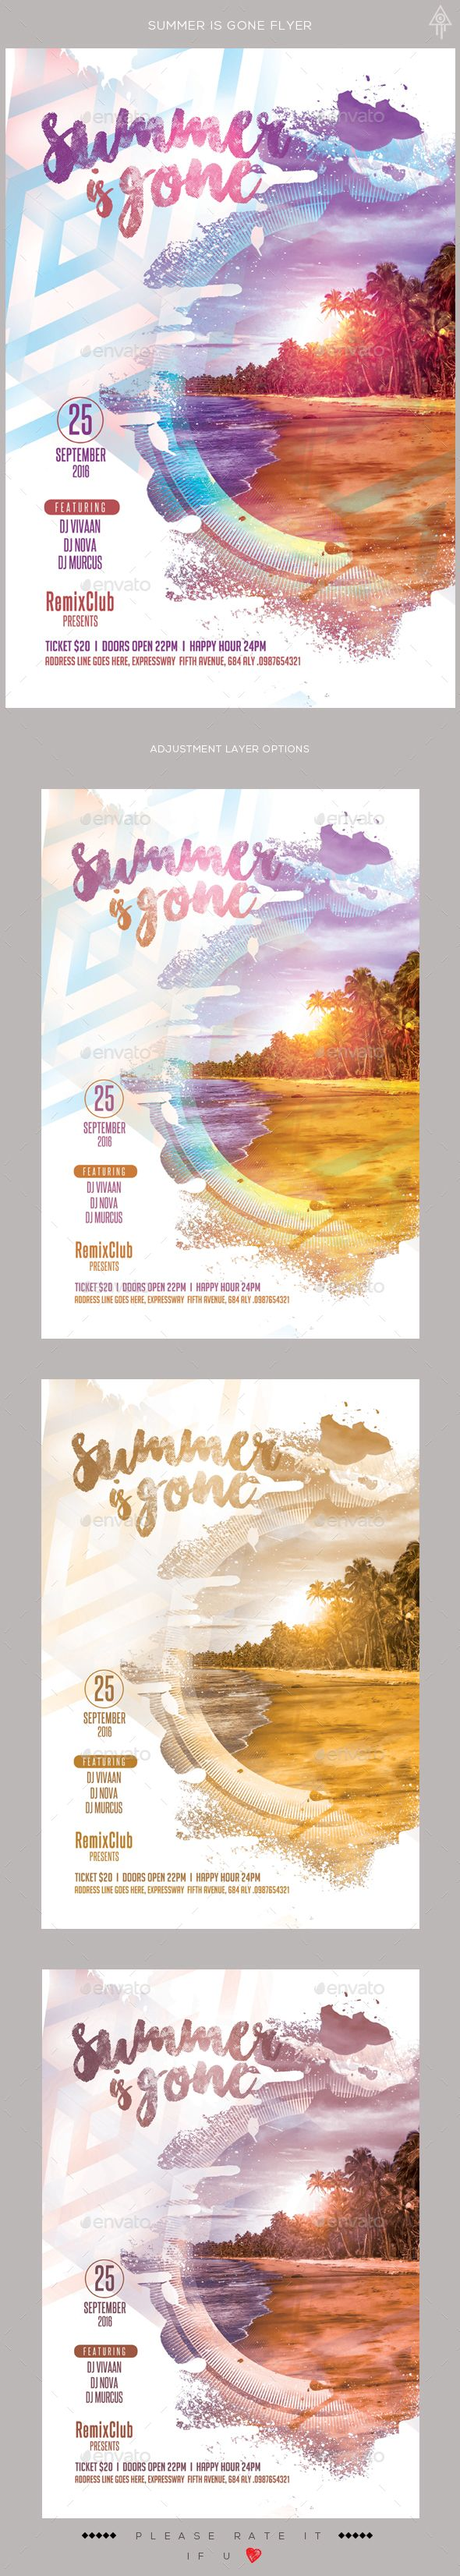 Poster design download - Summer Is Gone Flyer Event Poster Designpsd